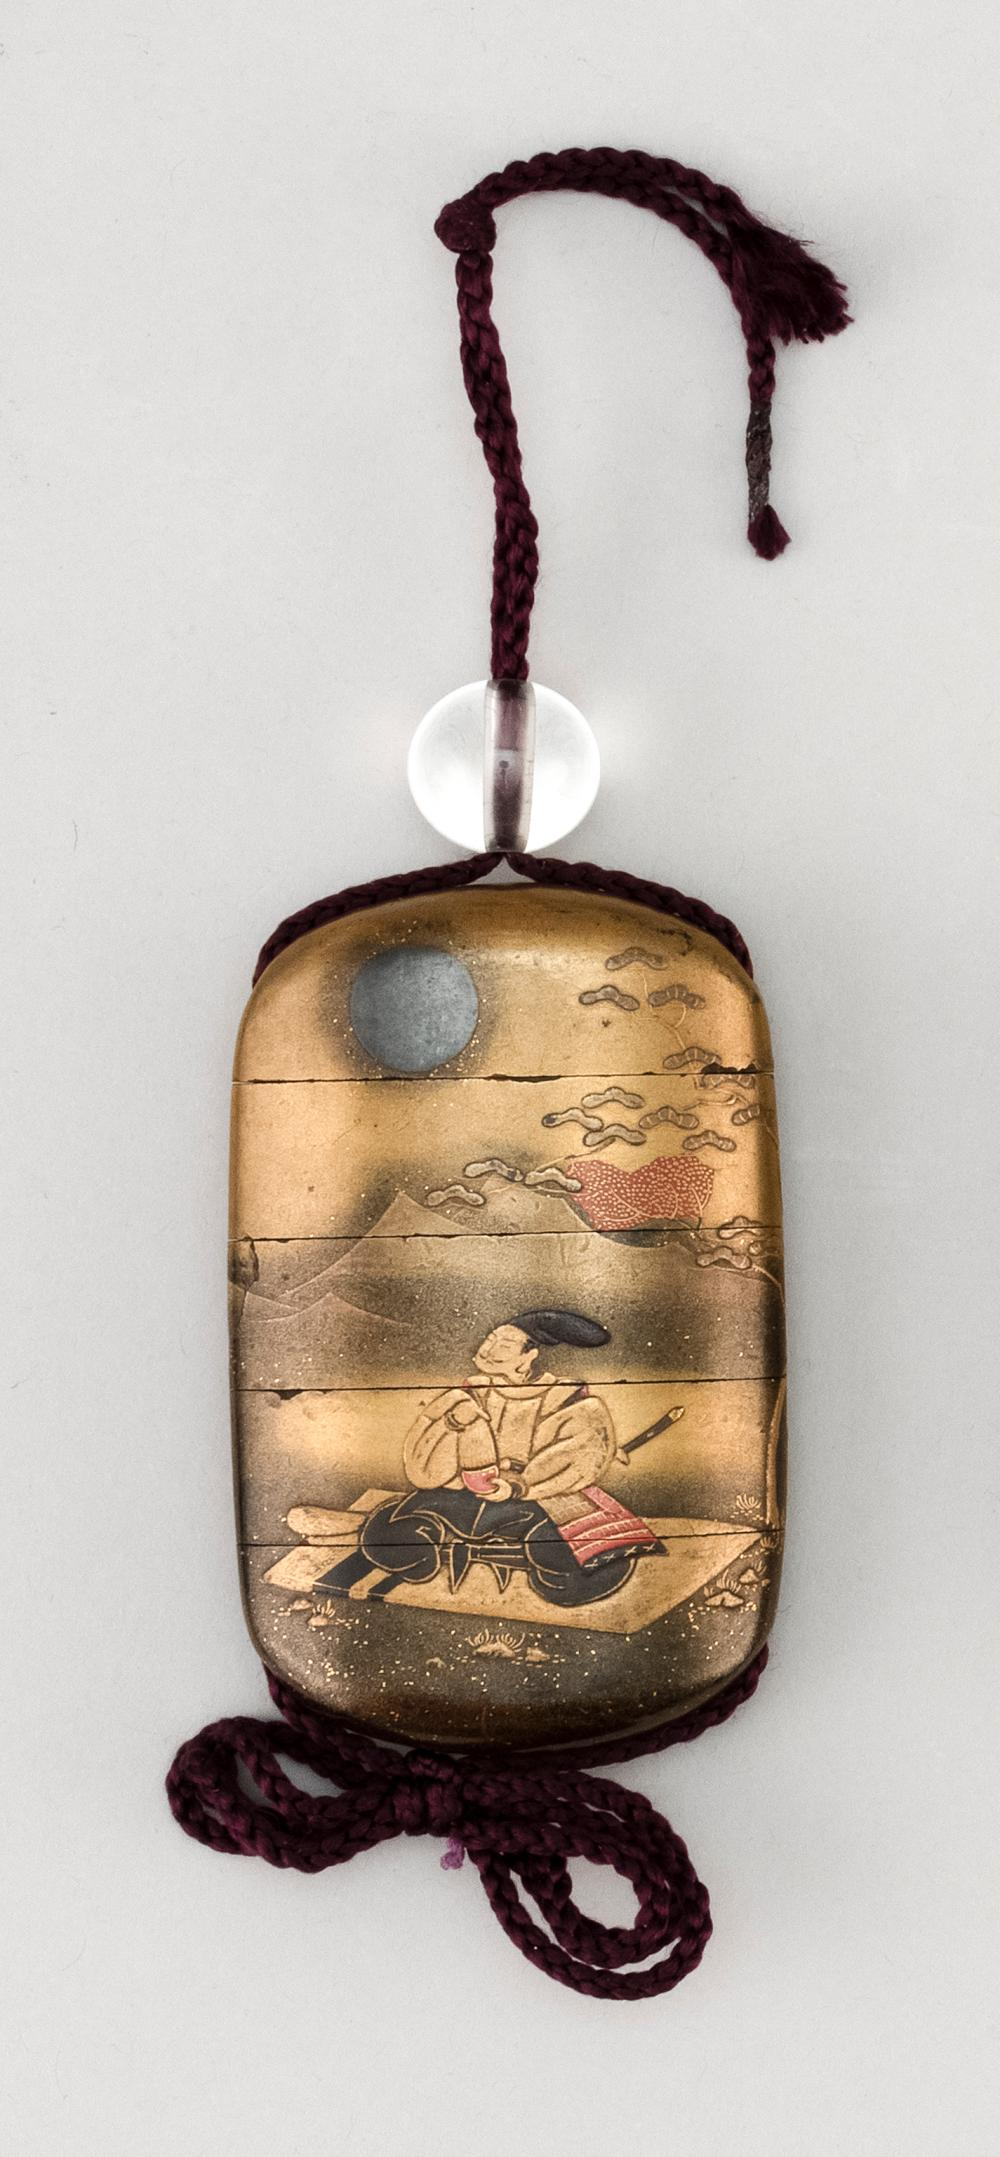 JAPANESE GOLD LACQUER FOUR-CASE INRO Decorated with two noblemen in a fall landscape. Length 3.4